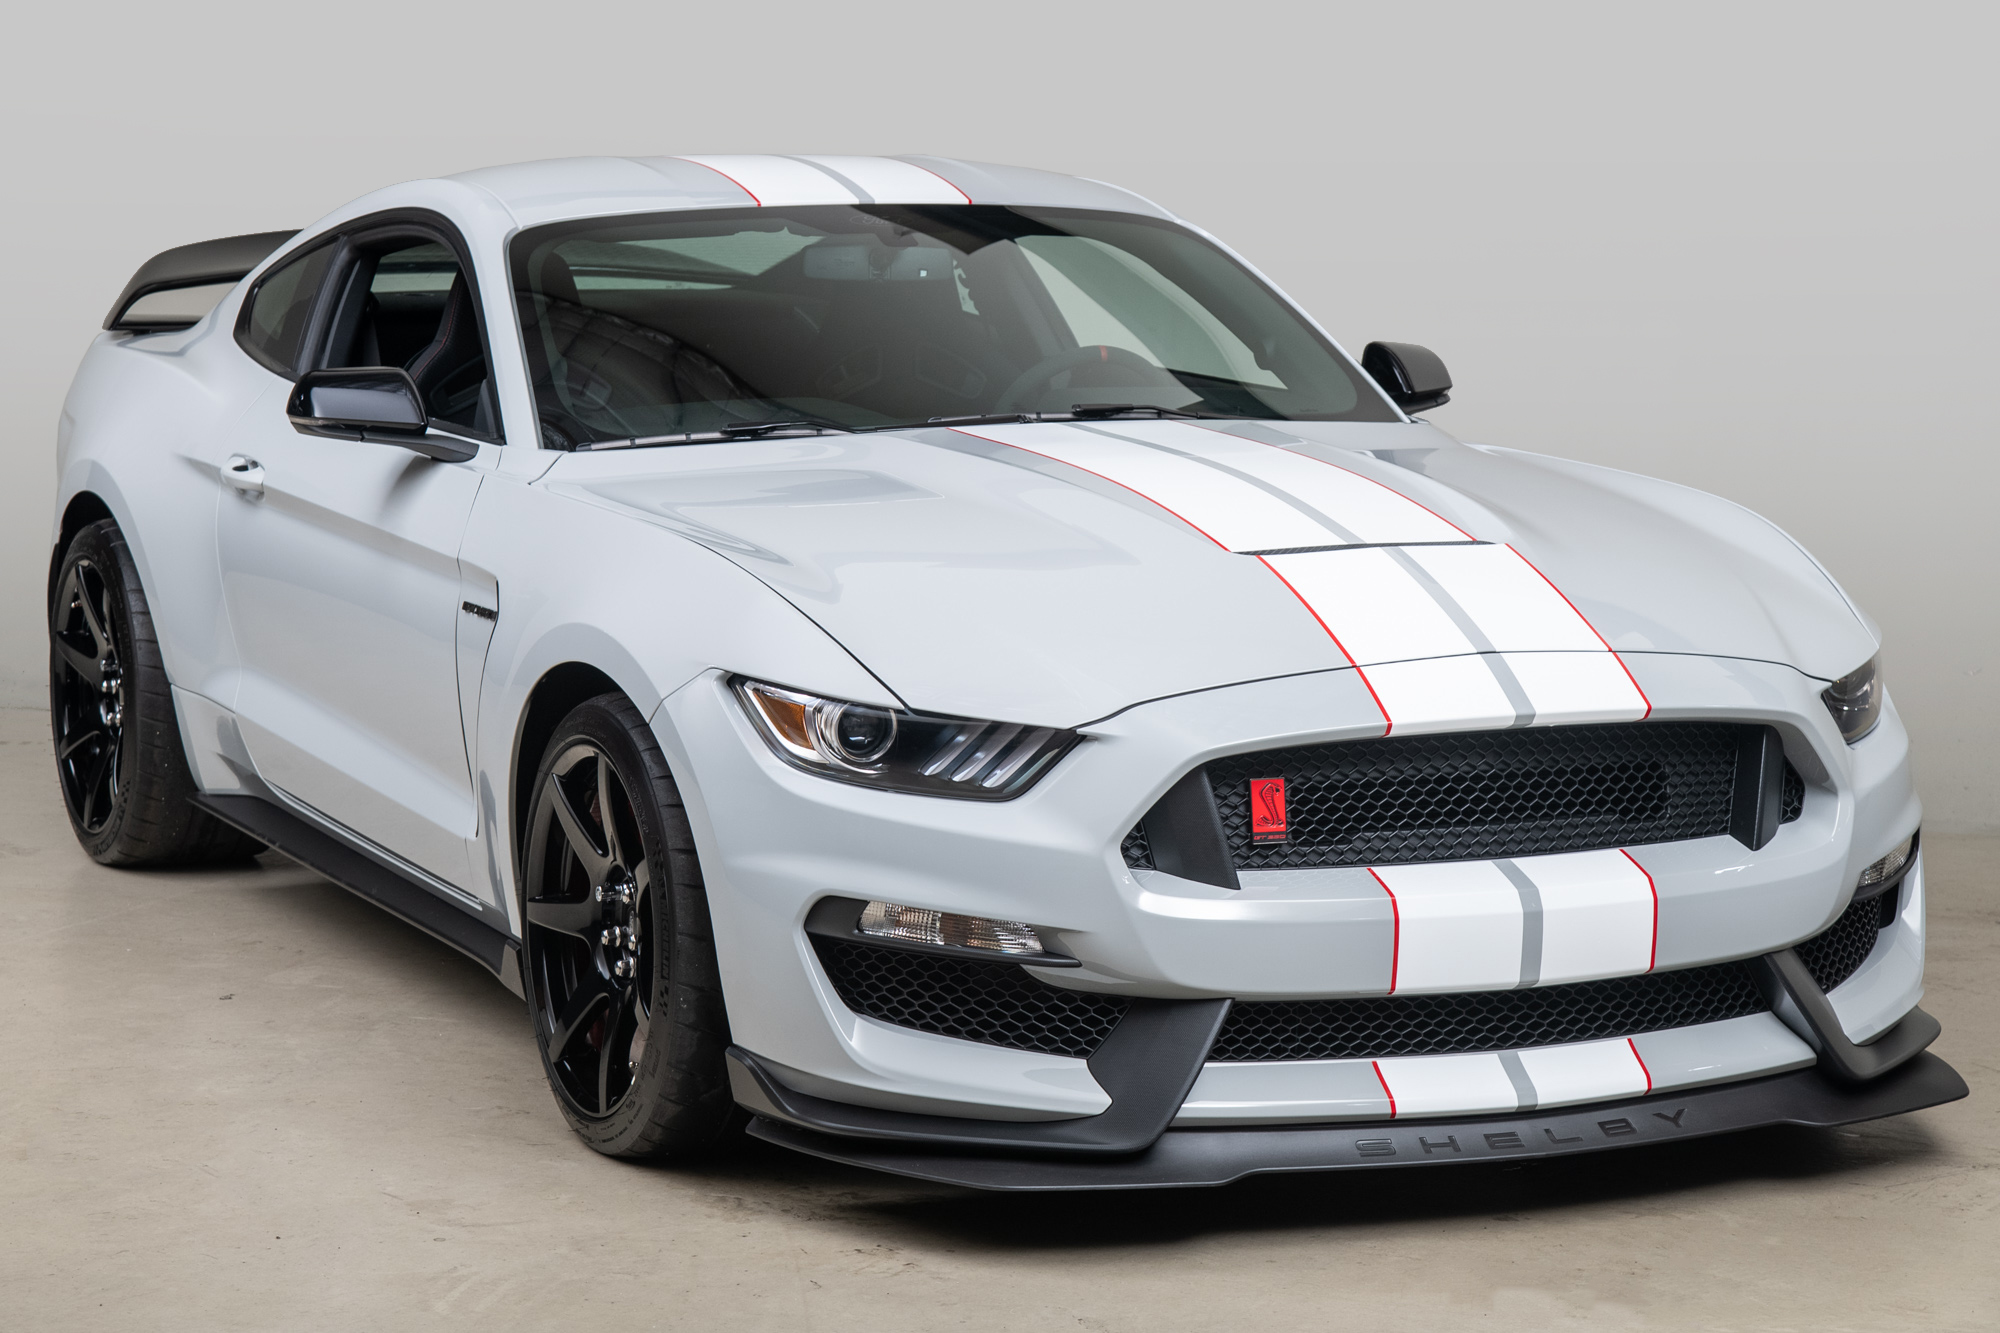 2015 Ford Mustang Shelby GT350R , AVALANCHE GREY, VIN 1FATP8JZ3F5520022, MILEAGE 85